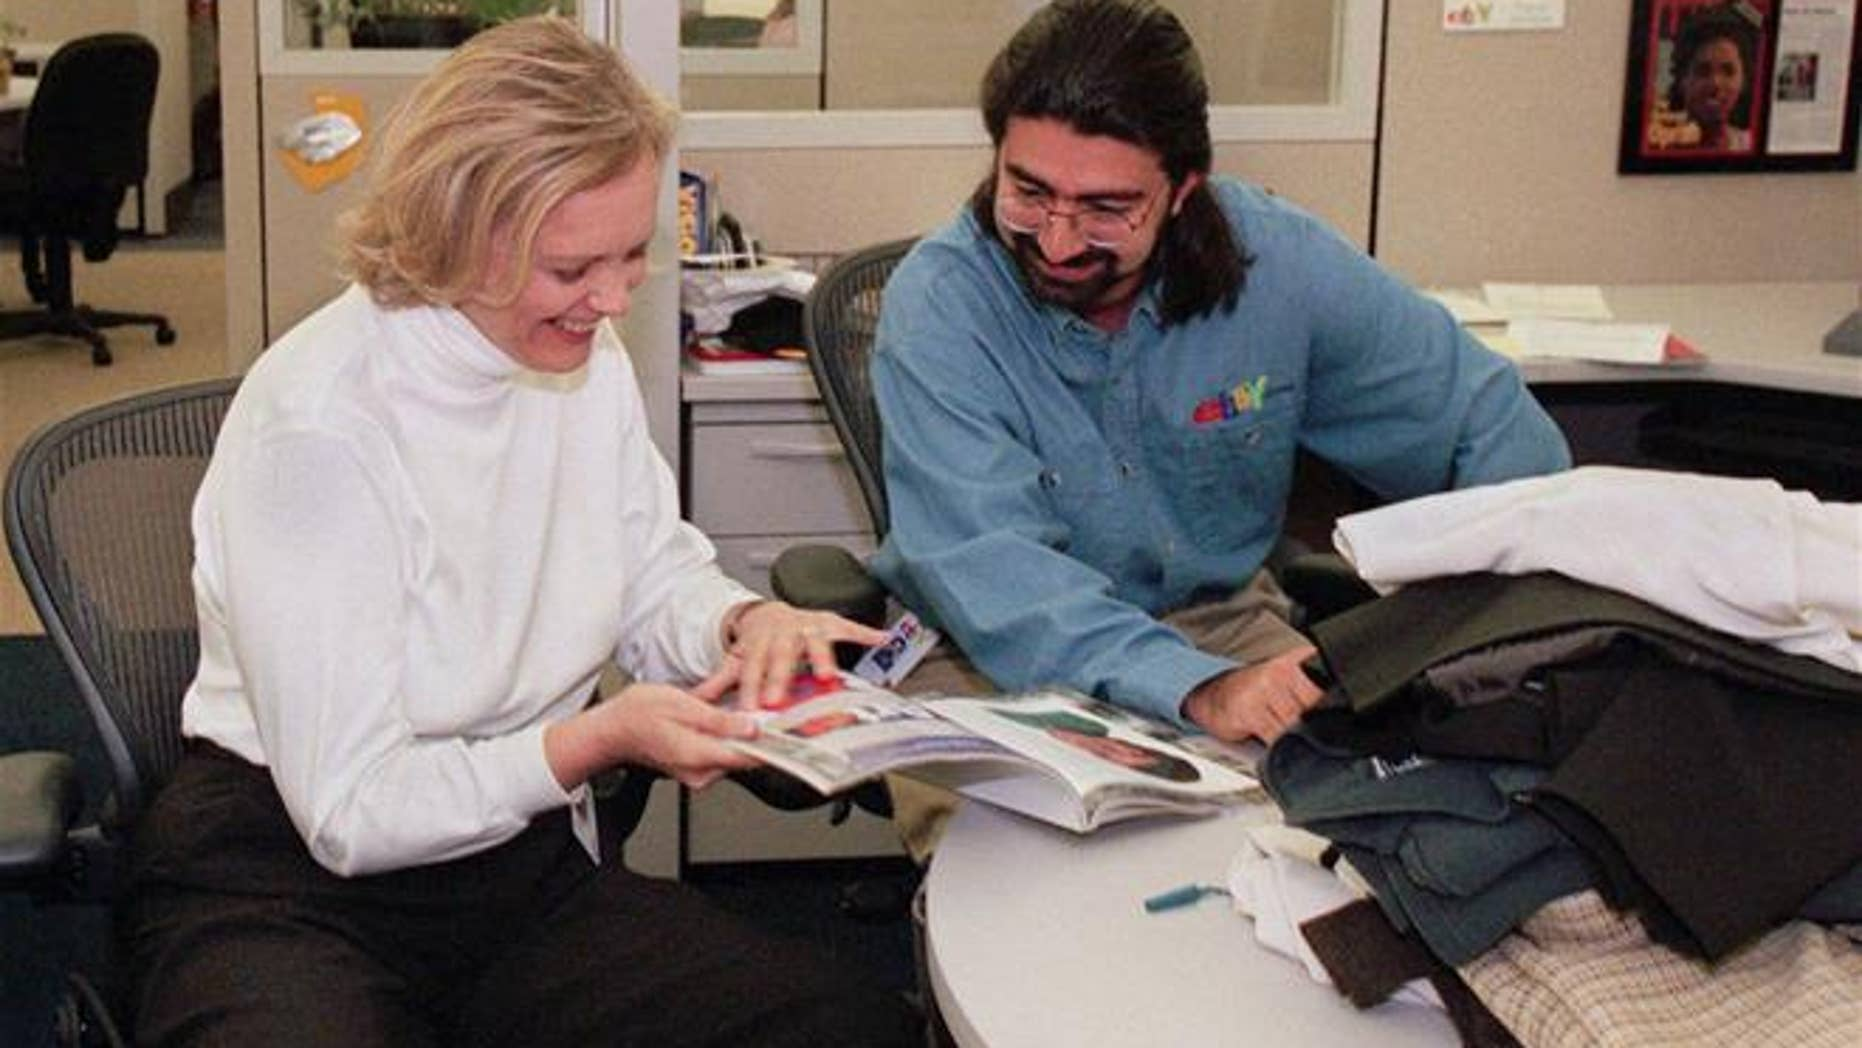 A 1999 file photo of eBay CEO Meg Whitman and founder Pierre Omidyar. (AP Photo/Randi Lynn Beach, File)